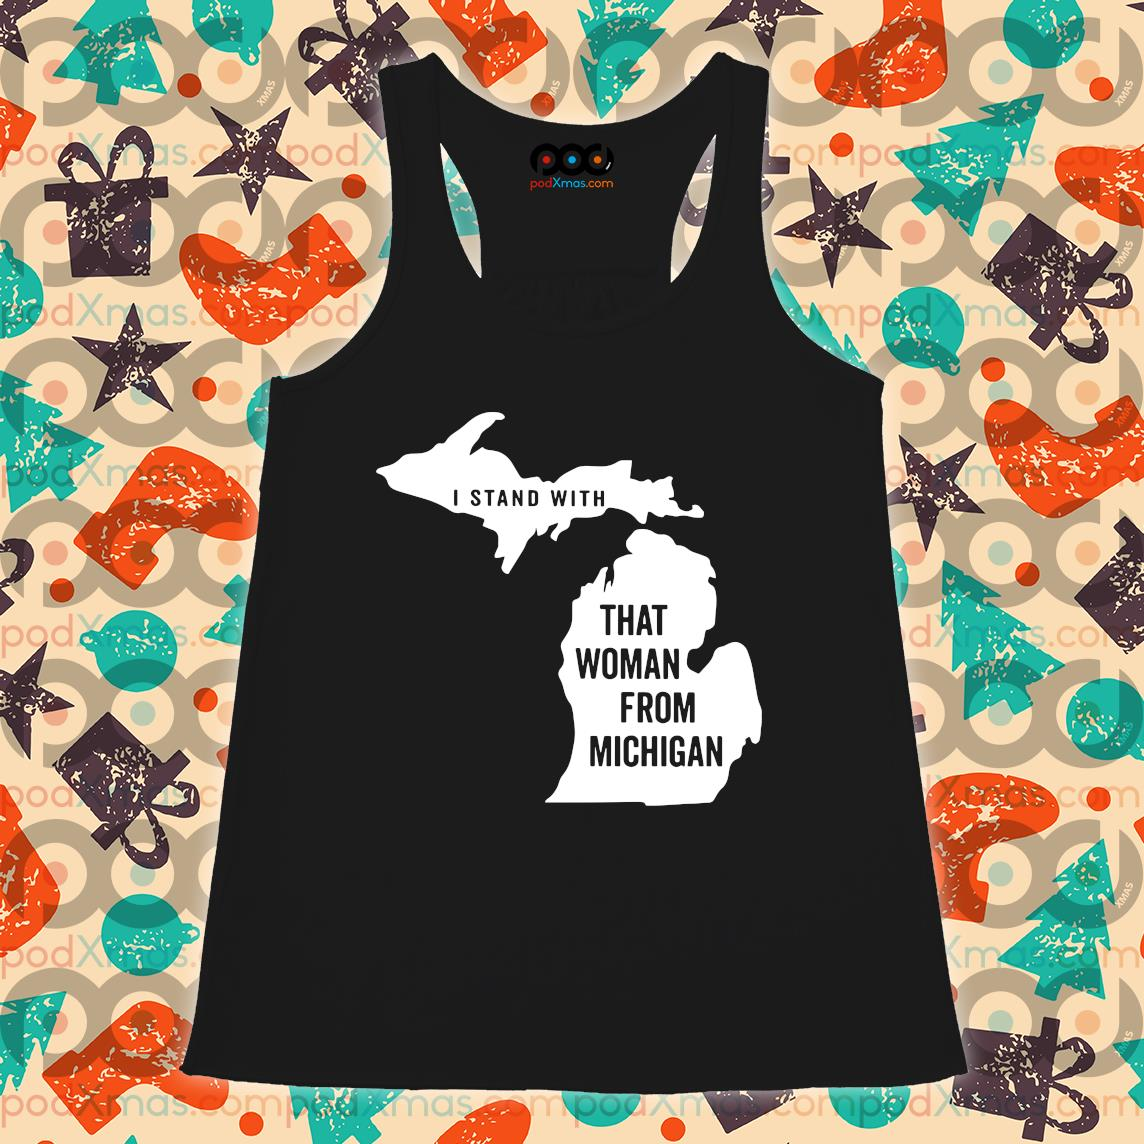 I stand with that woman from Michigan s Flowy tank PODxmas den